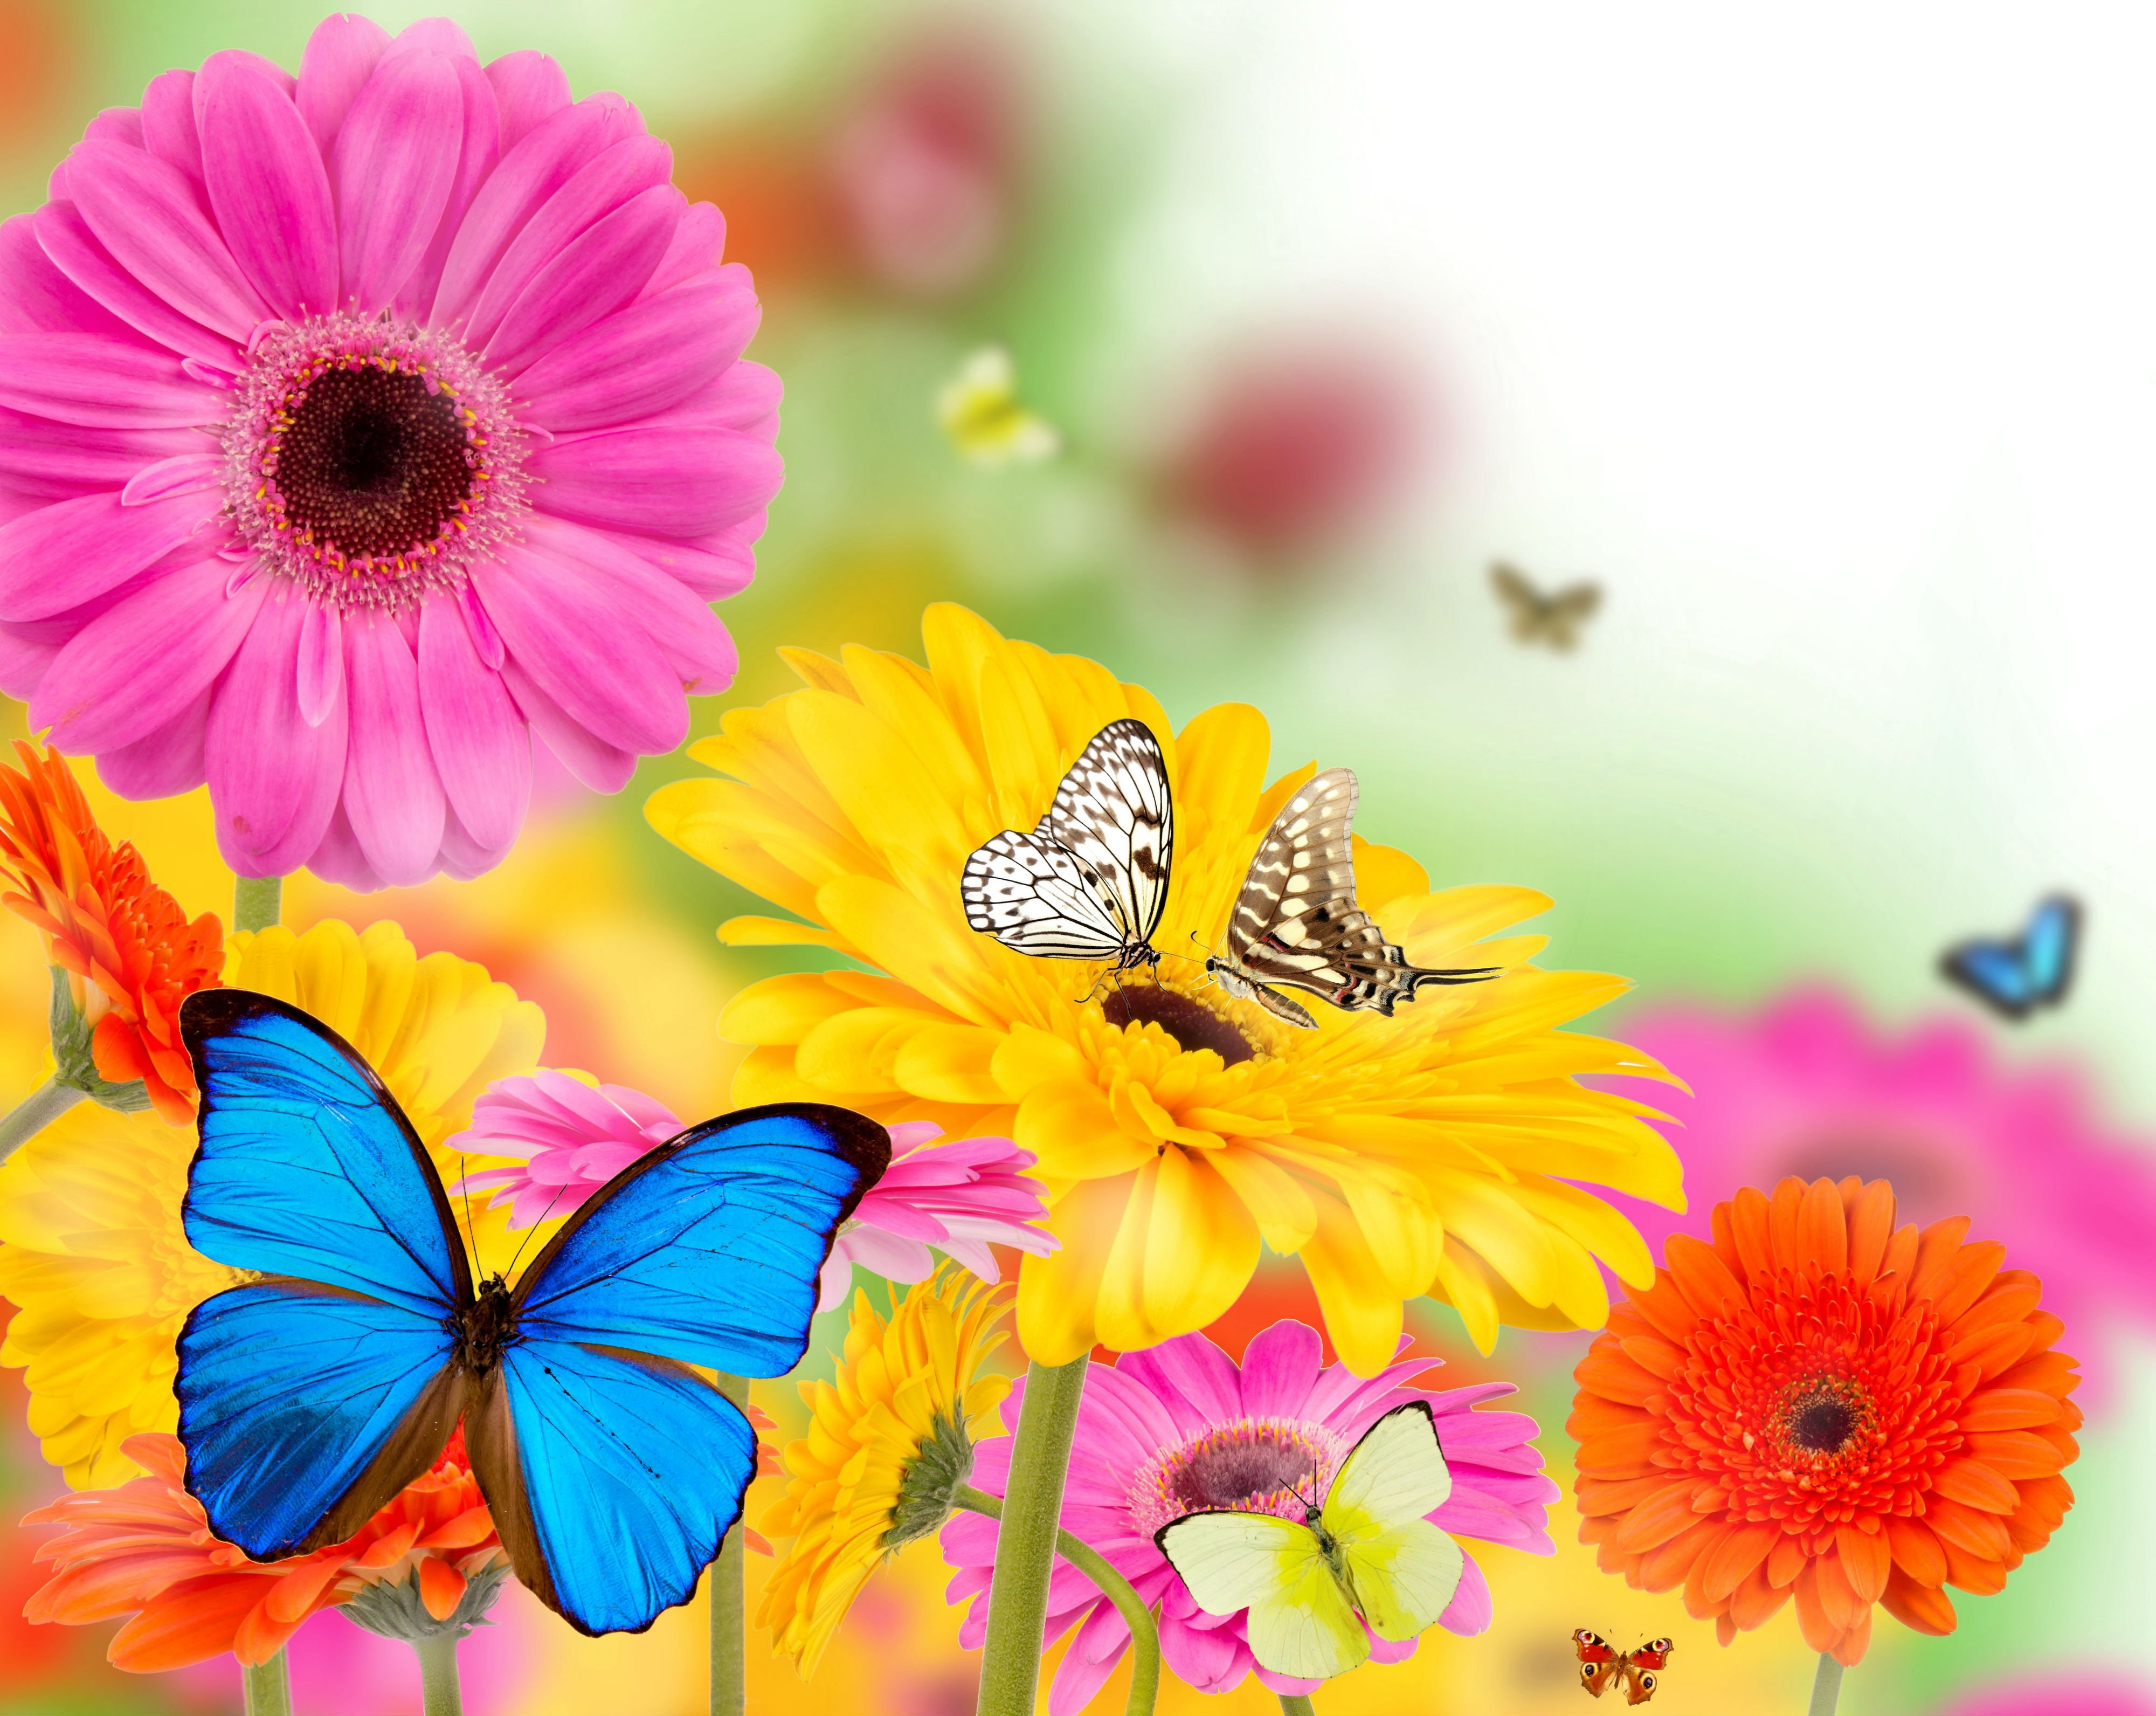 Spring Flowers and Butterflies Wallpapers HD 4000x3183